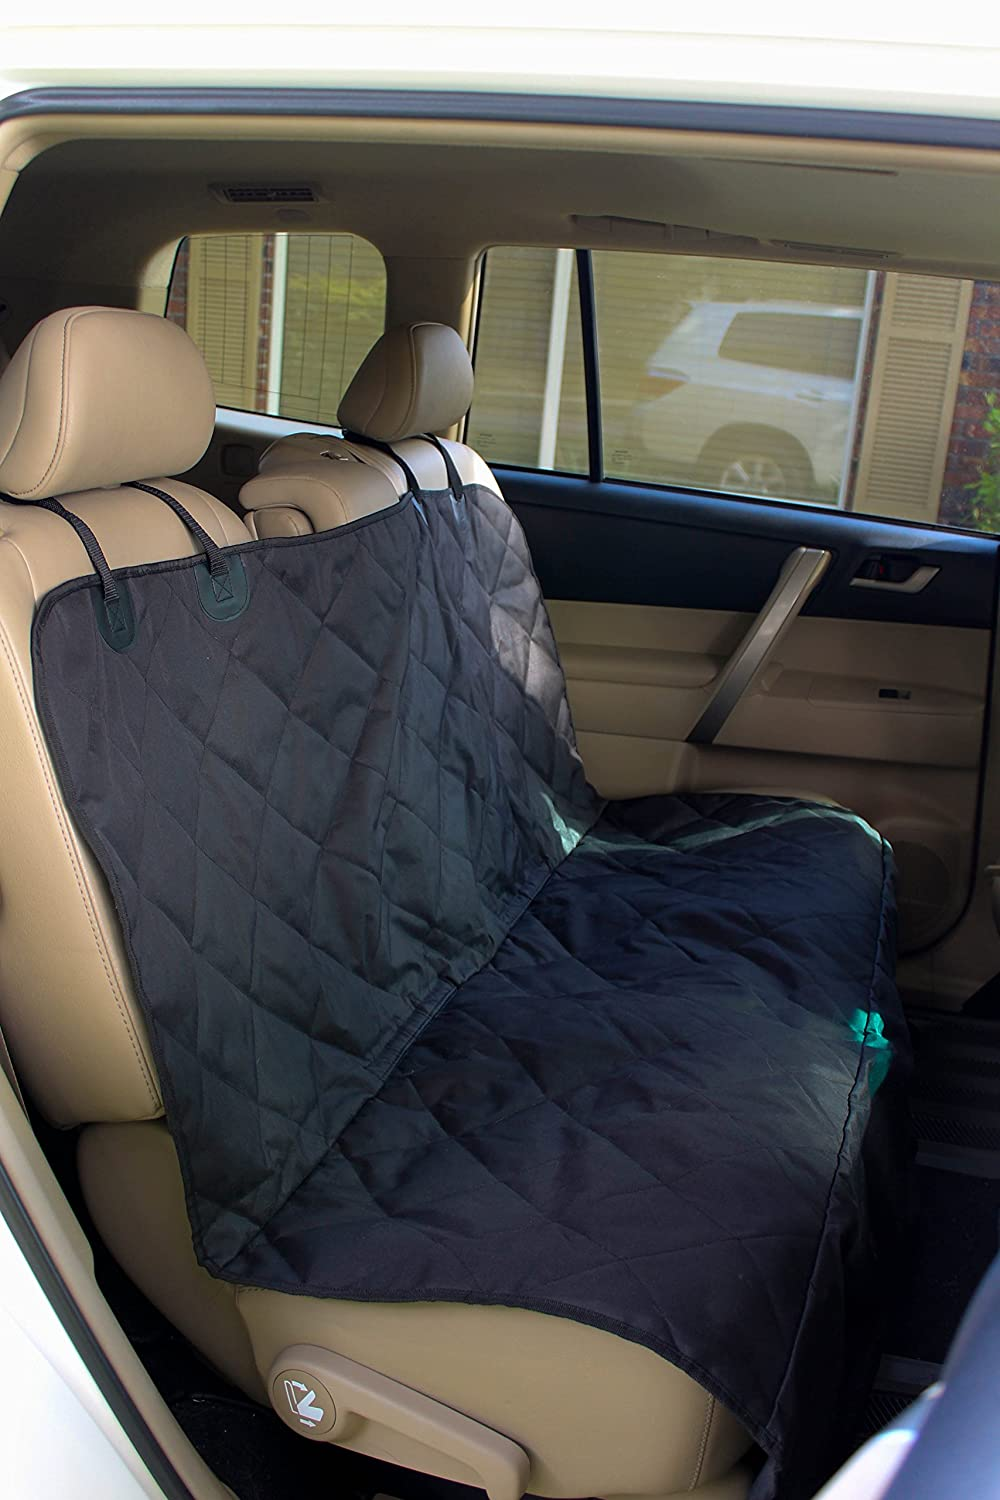 Amazon.com : Pet Seat Cover for Cars - Easy to Clean Quilted ...